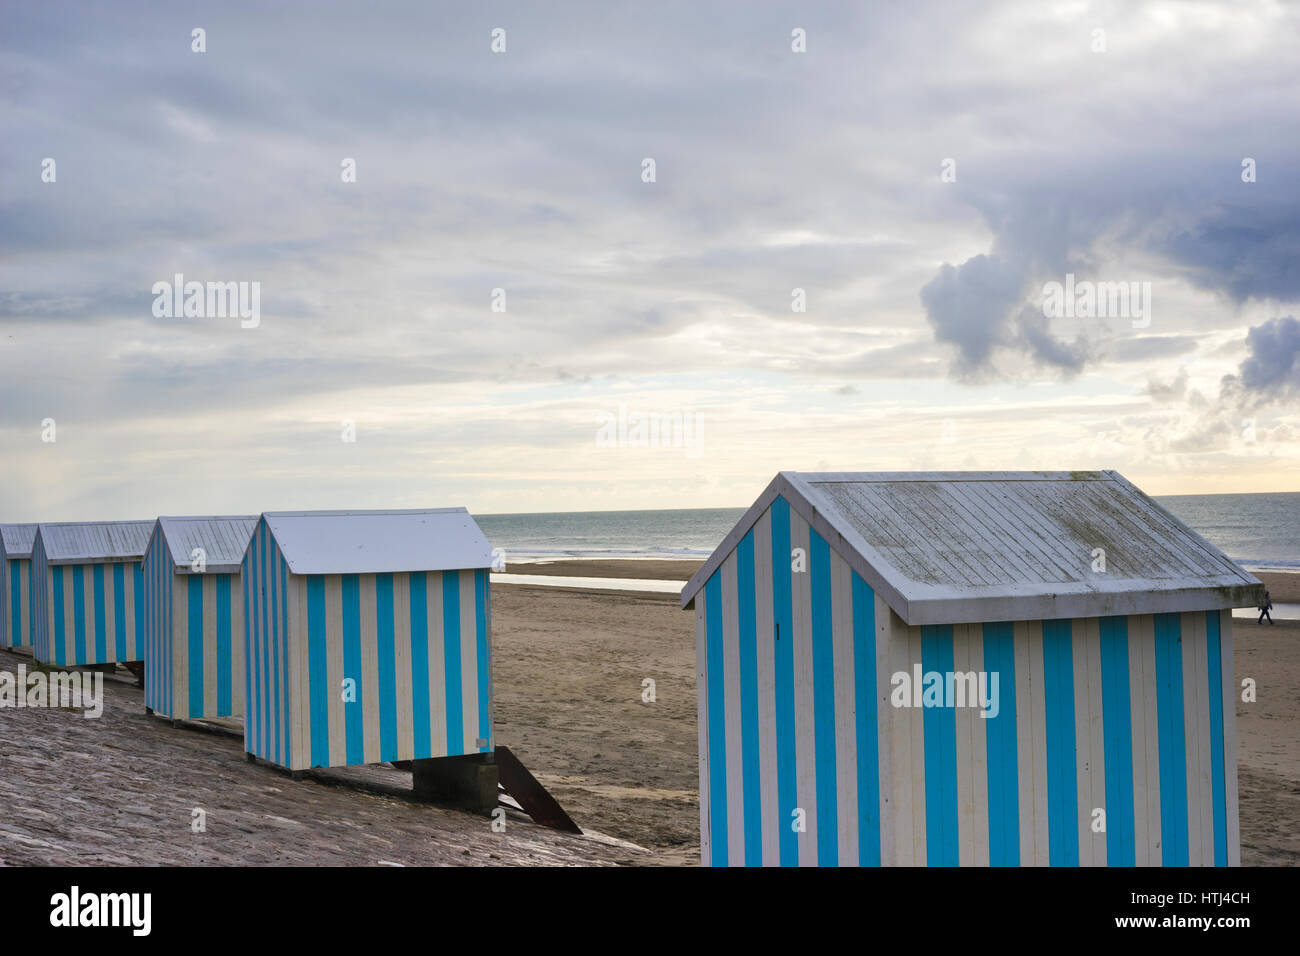 Cabins and Beach hoods on the beach of Neufchatel- Hardelot, Pas de Calais, France - Stock Image